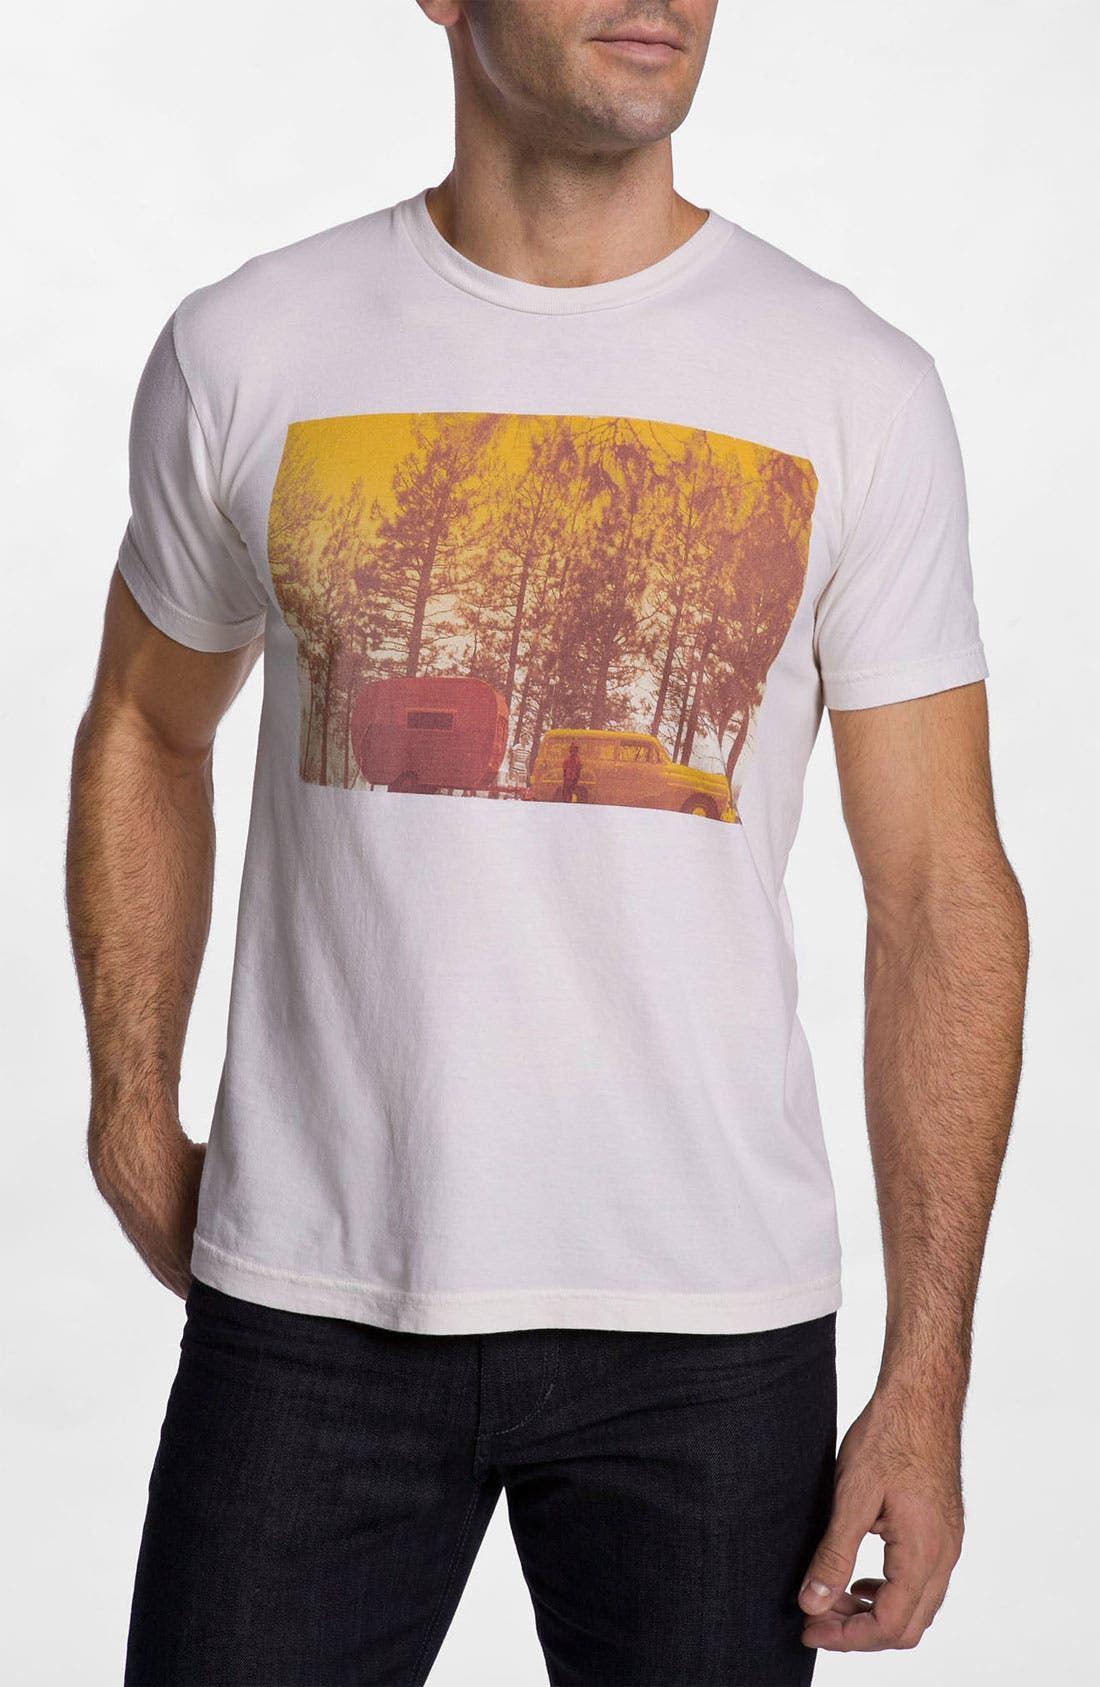 Alternate Image 1 Selected - The Poster List '1950s Camping' T-Shirt